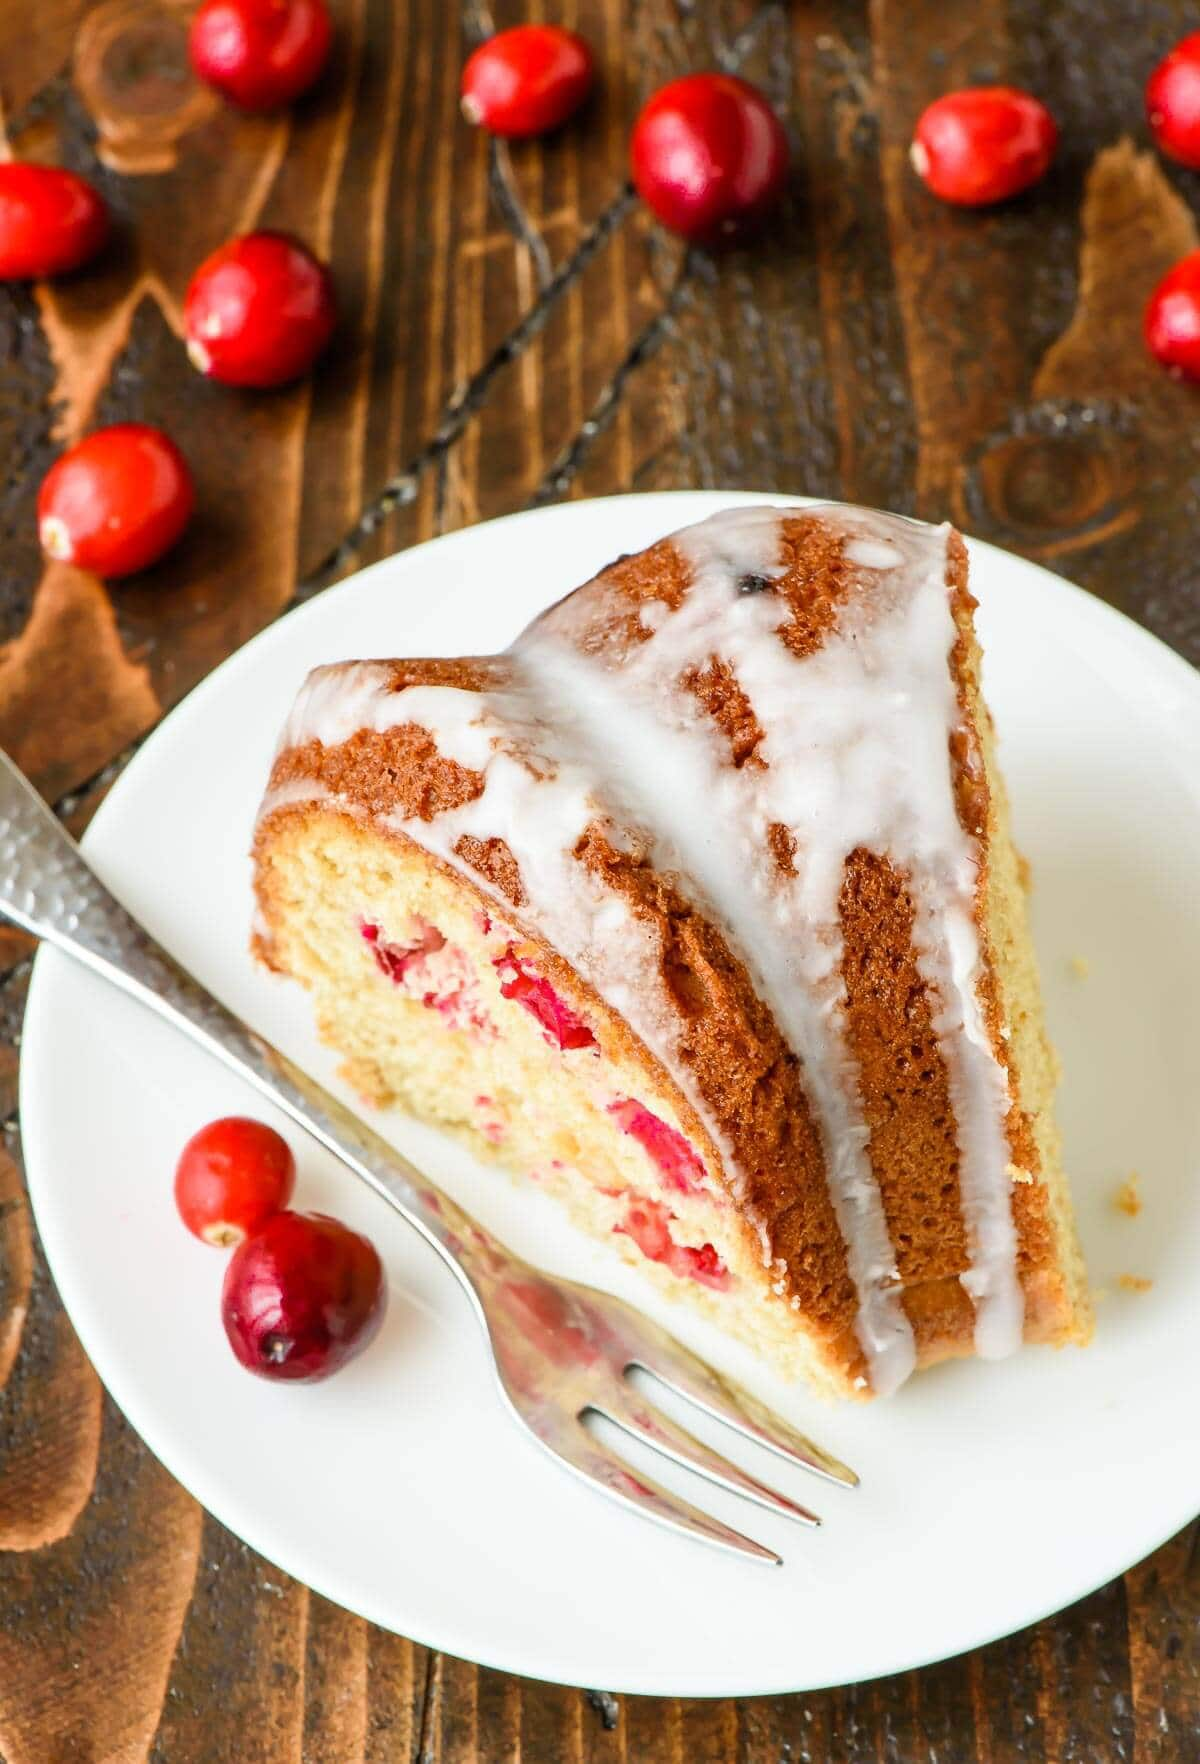 This Cranberry Sour Cream Coffee Cake Is A Total Crowd Pleaser Especially At The Holidays